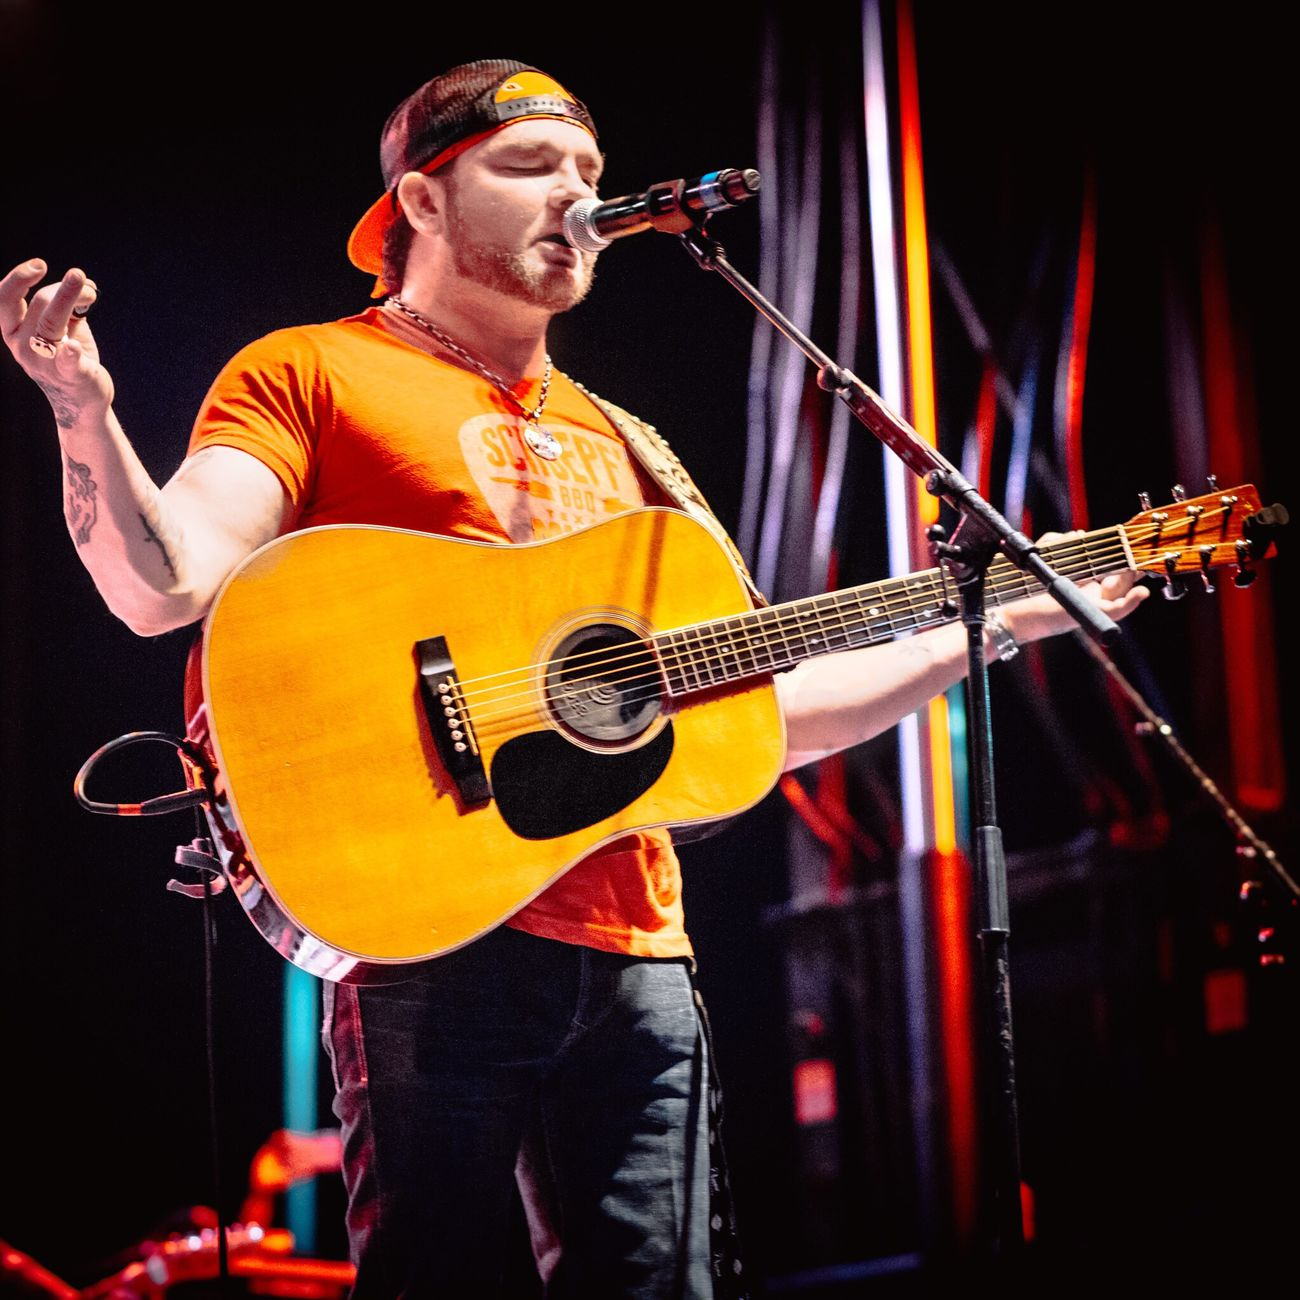 This AMAZING songwriter, Stoney LaRue / Waco, TX 6.4.17 Music Musician Musical Instrument Guitar Playing Guitarist Performance Arts Culture And Entertainment Stage - Performance Space Event Electric Guitar Plucking An Instrument Singing Popular Music Concert Performing Arts Event Singer  Nightlife Men Modern Rock Rock Music Nikon Nikonphotography Nikonphotographer NikonD810